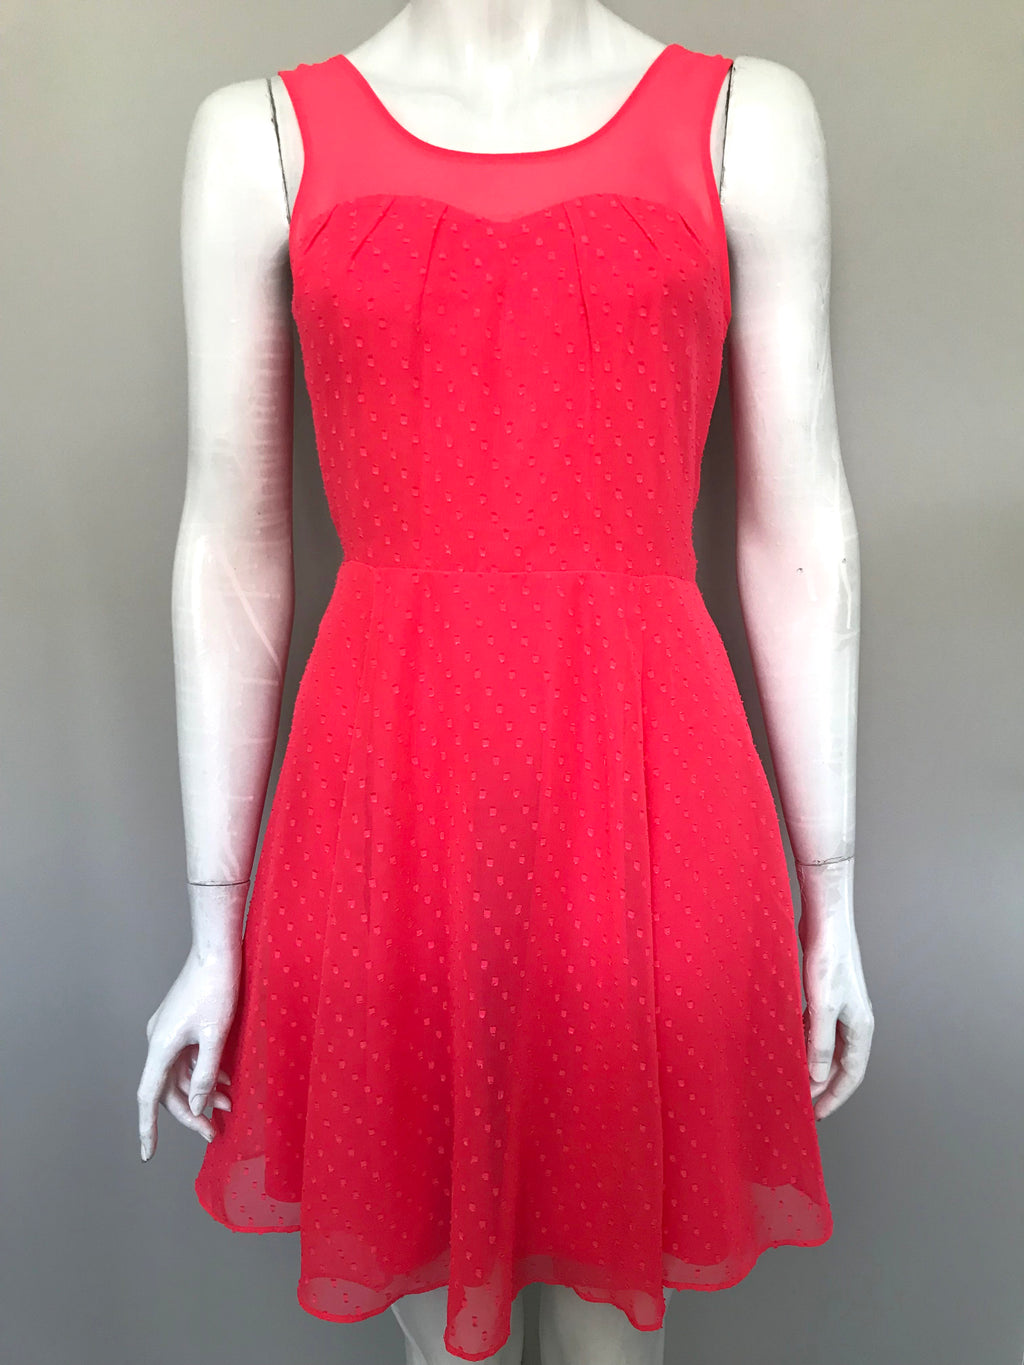 Express Coral Sleeveless Dress Size 4